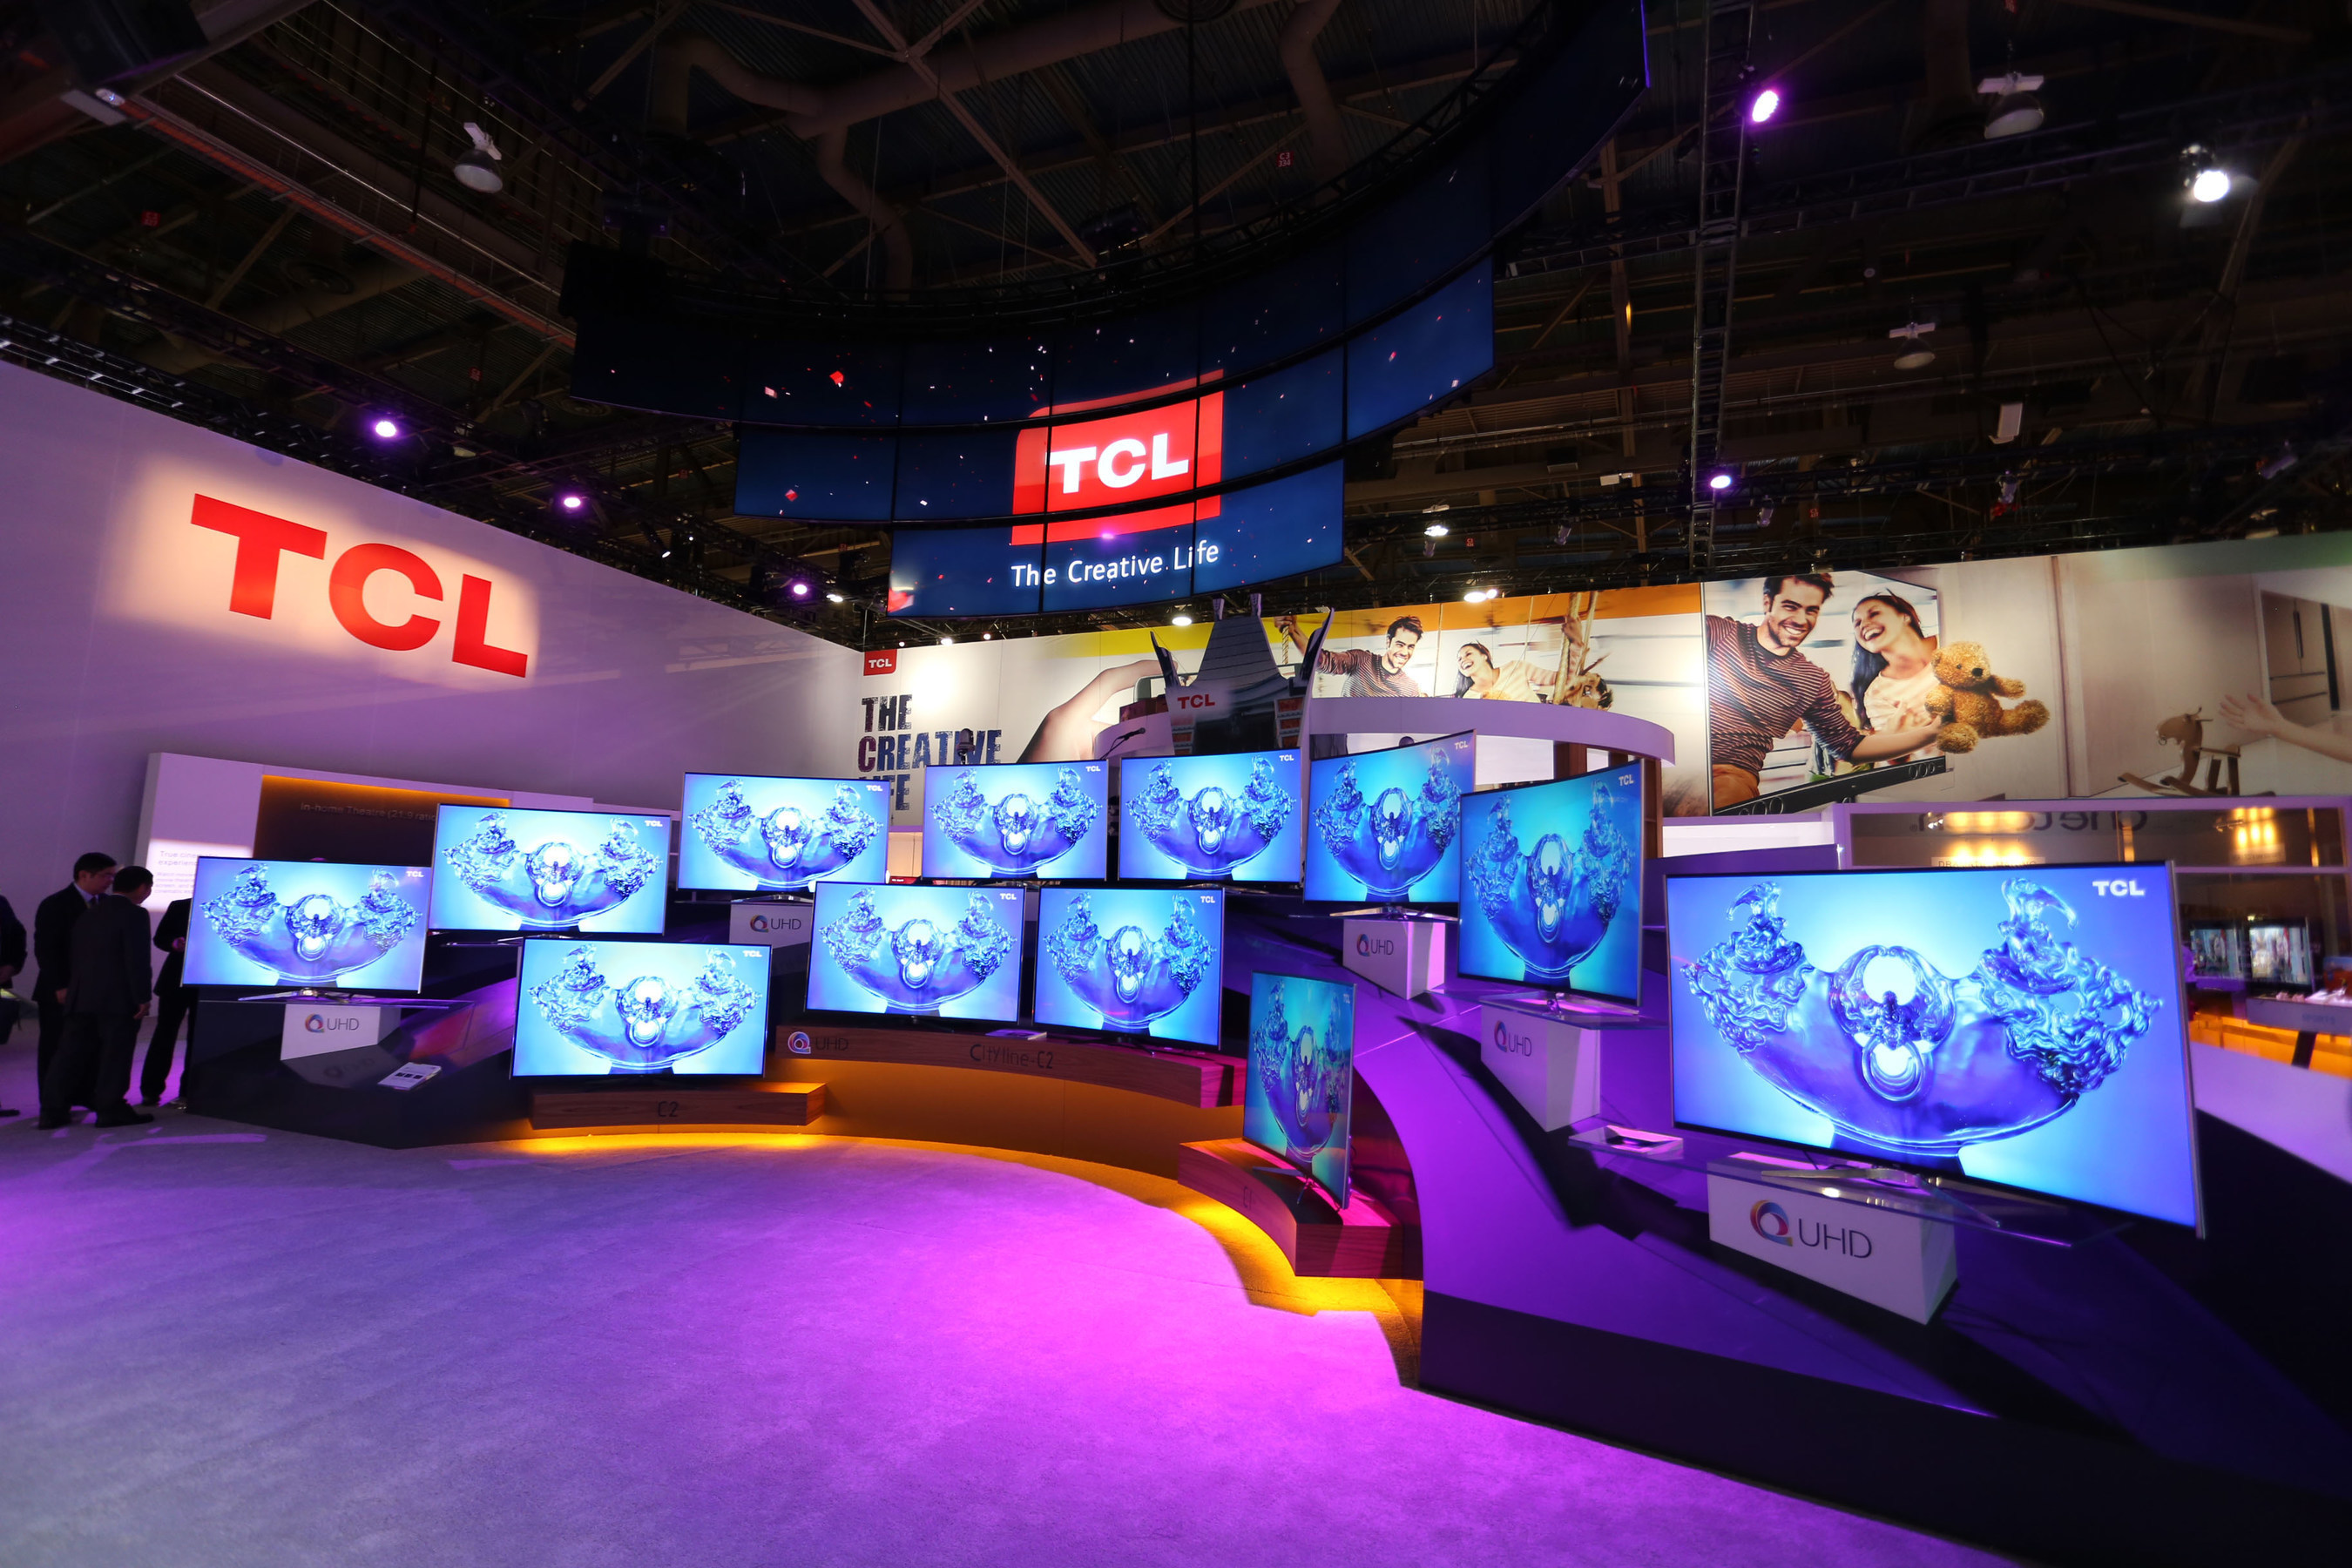 TCL booth at CES 2016 _2_